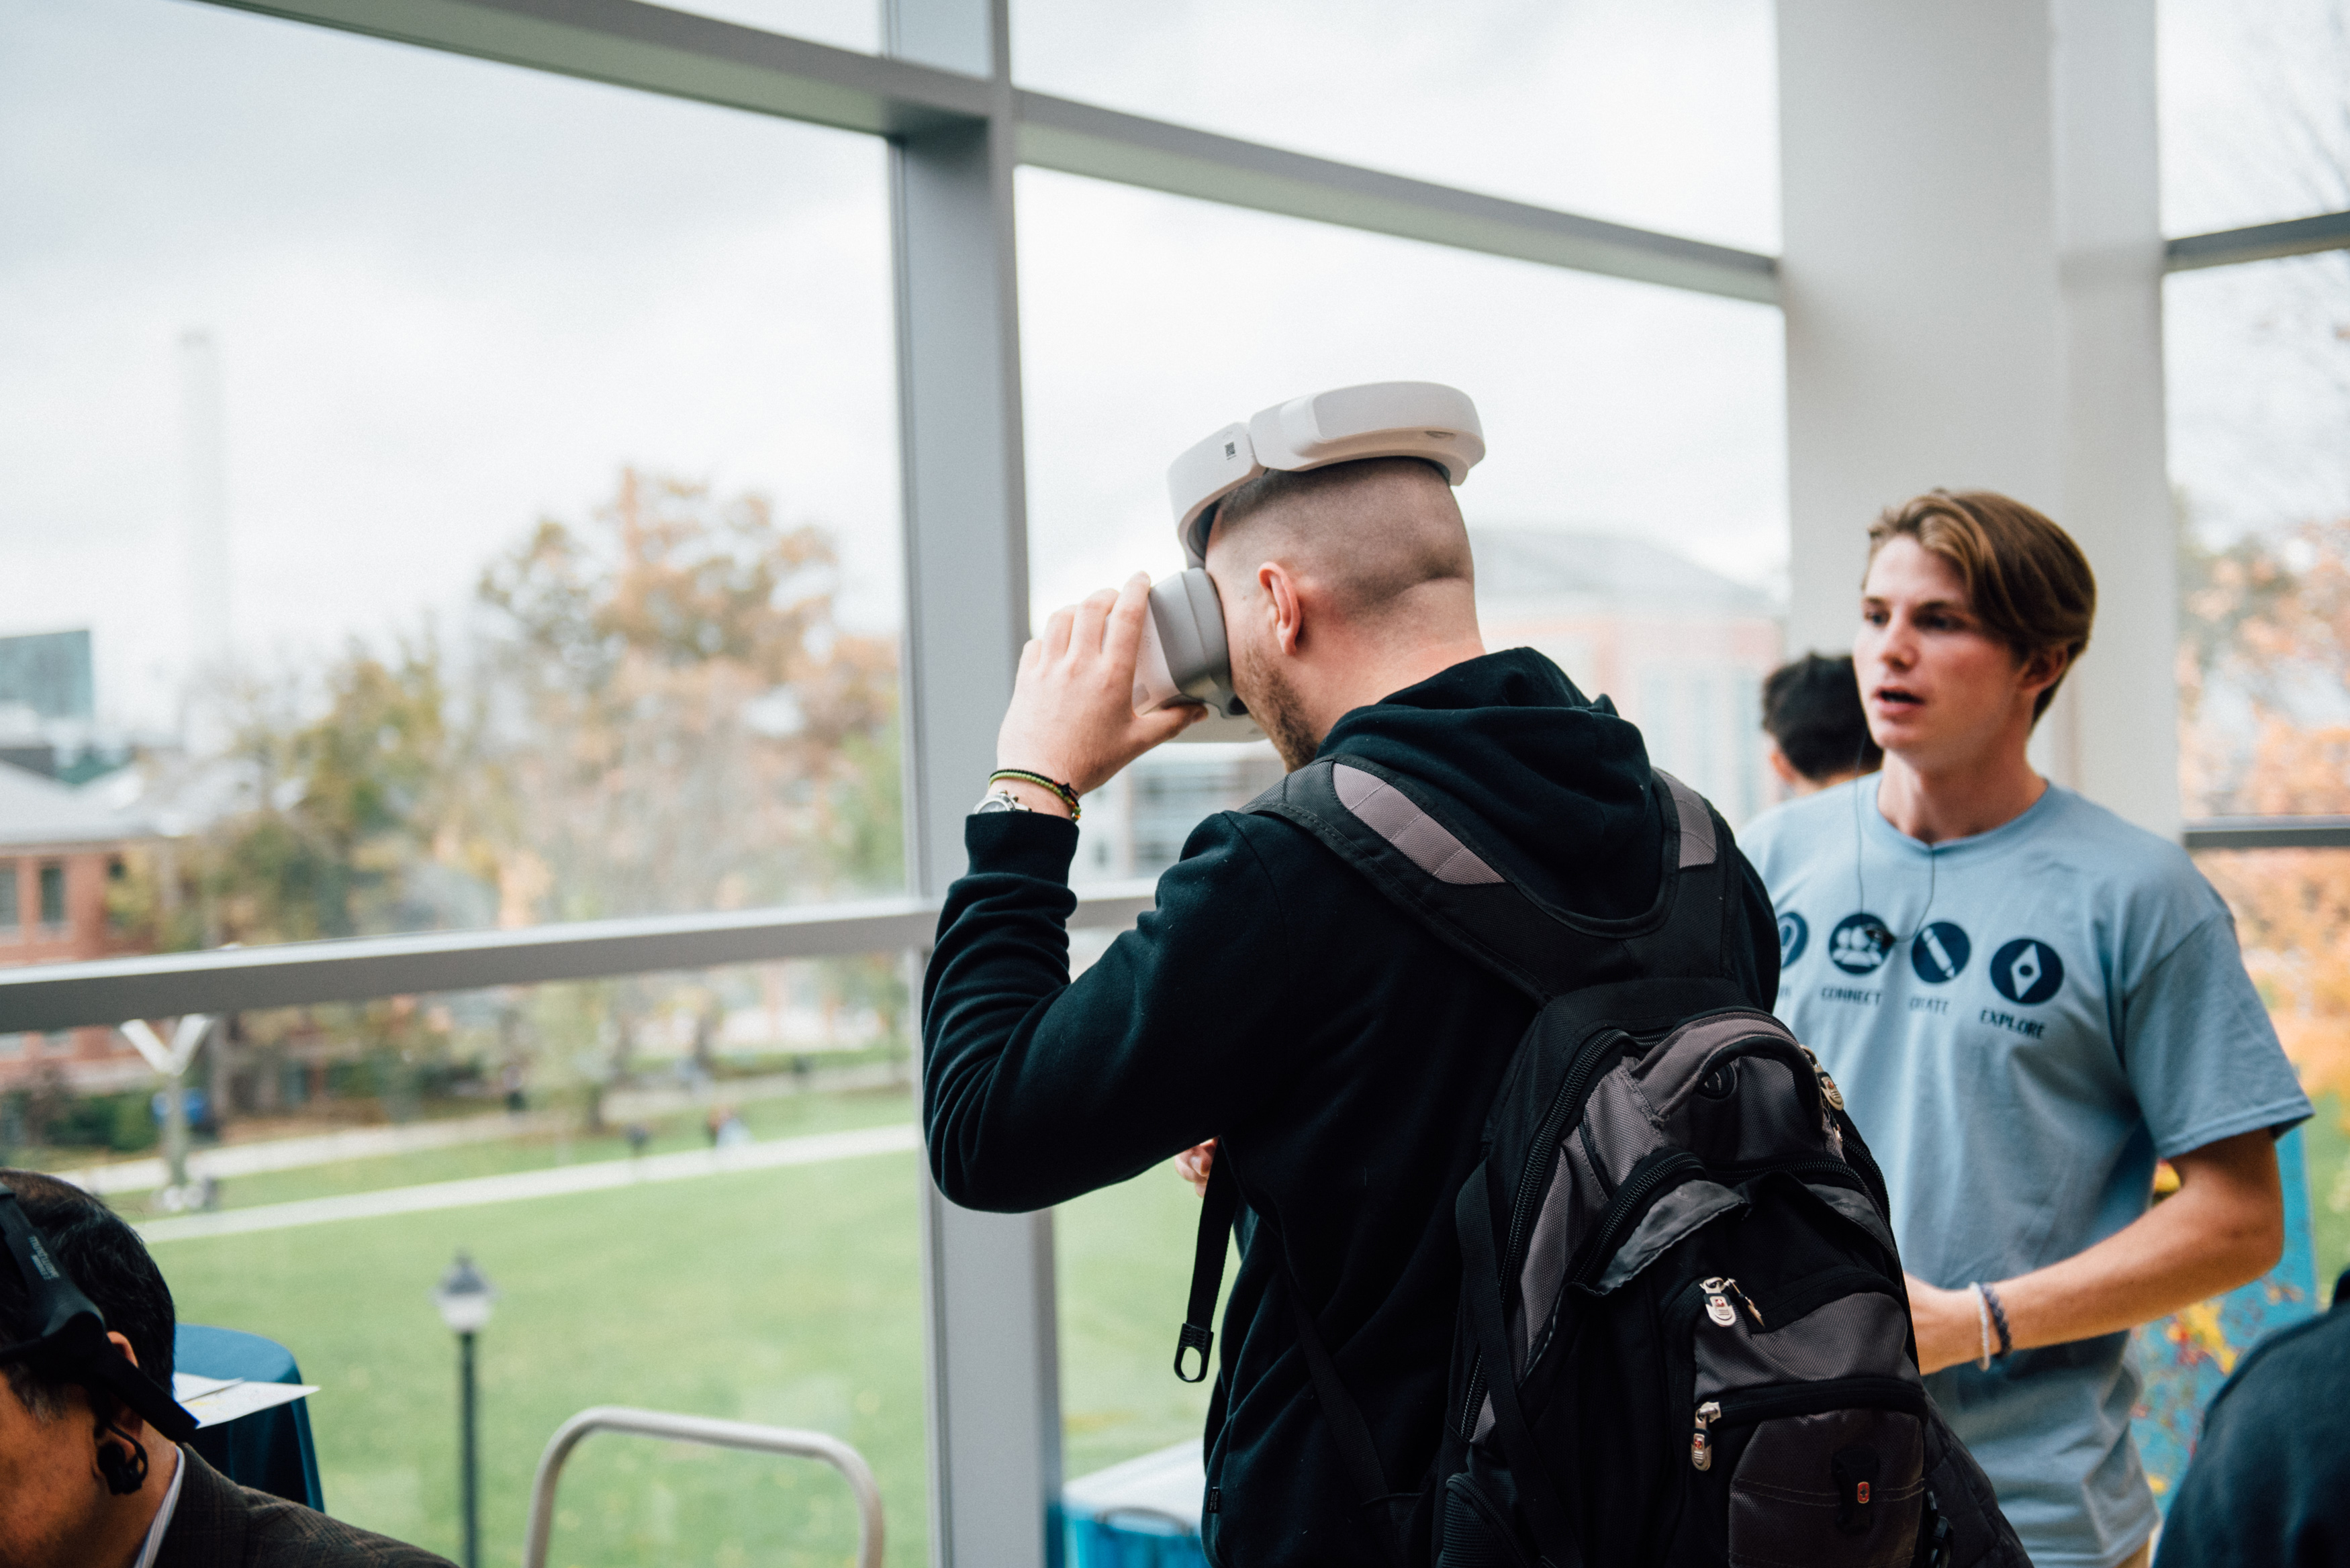 A student wearing a virtual reality headset watches live drone footage from a pilot flying a drone outside the Student Union during the Innovation Expo on Oct. 29. (Nathan Oldham/UConn Photo)